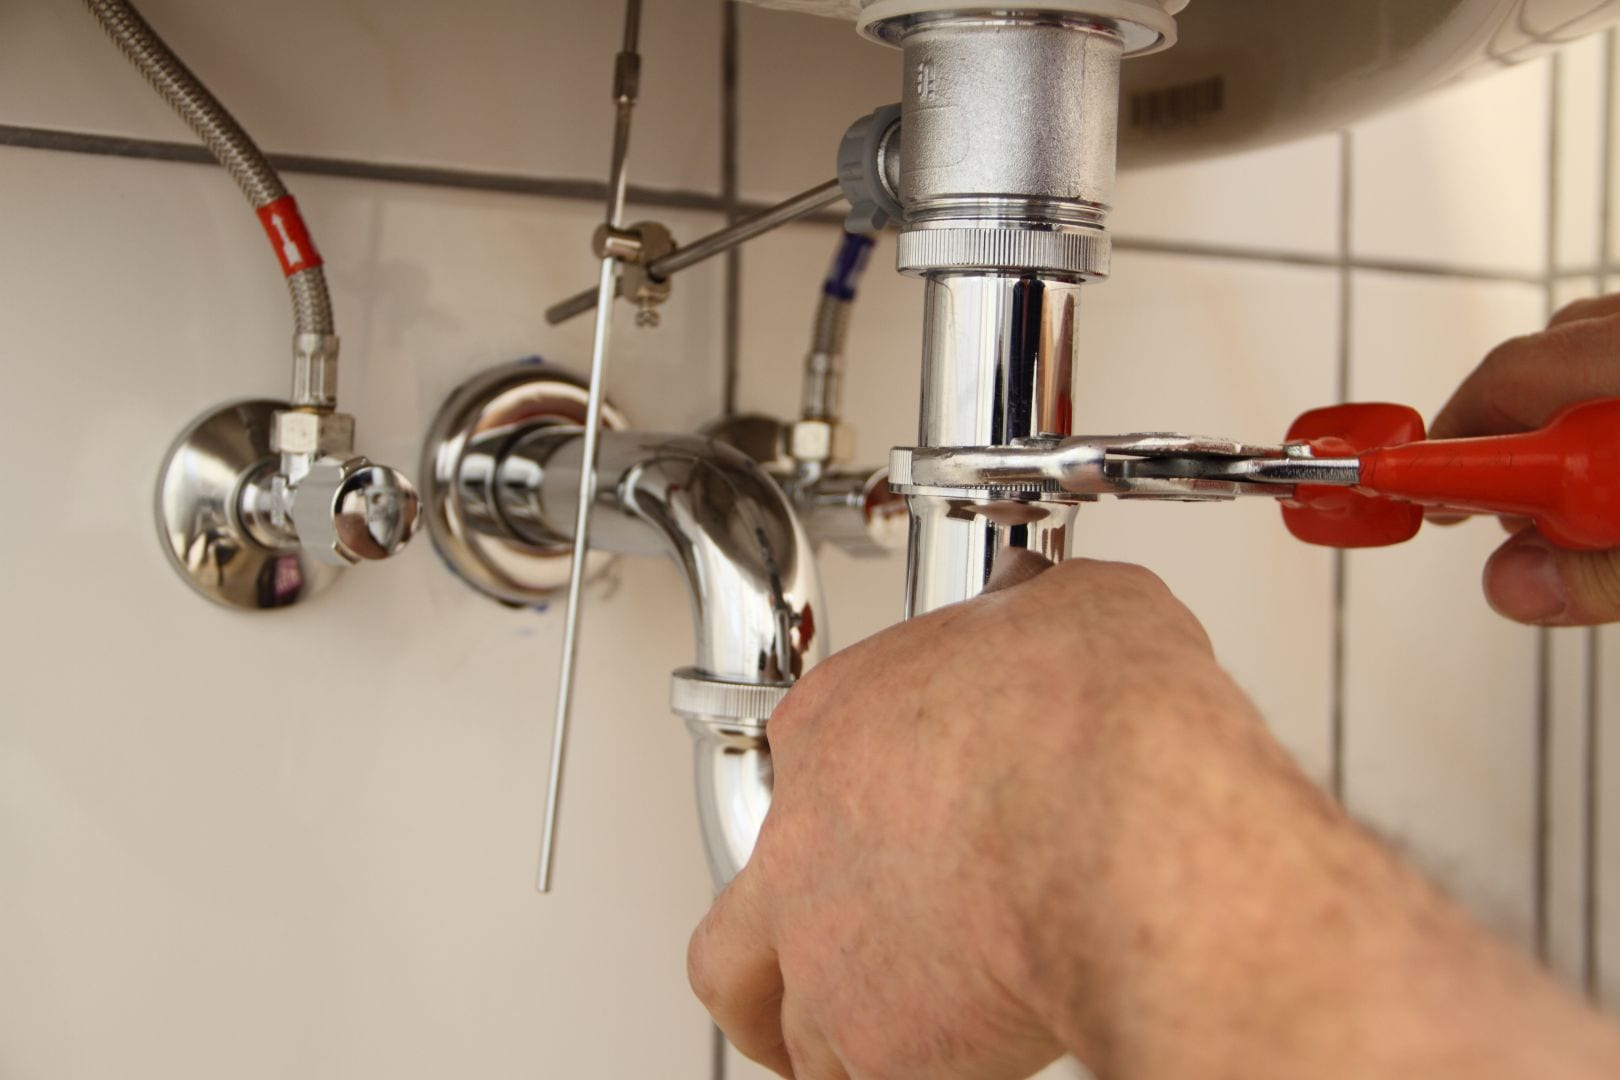 Commercial Plumbing & Repair Services in Illinois